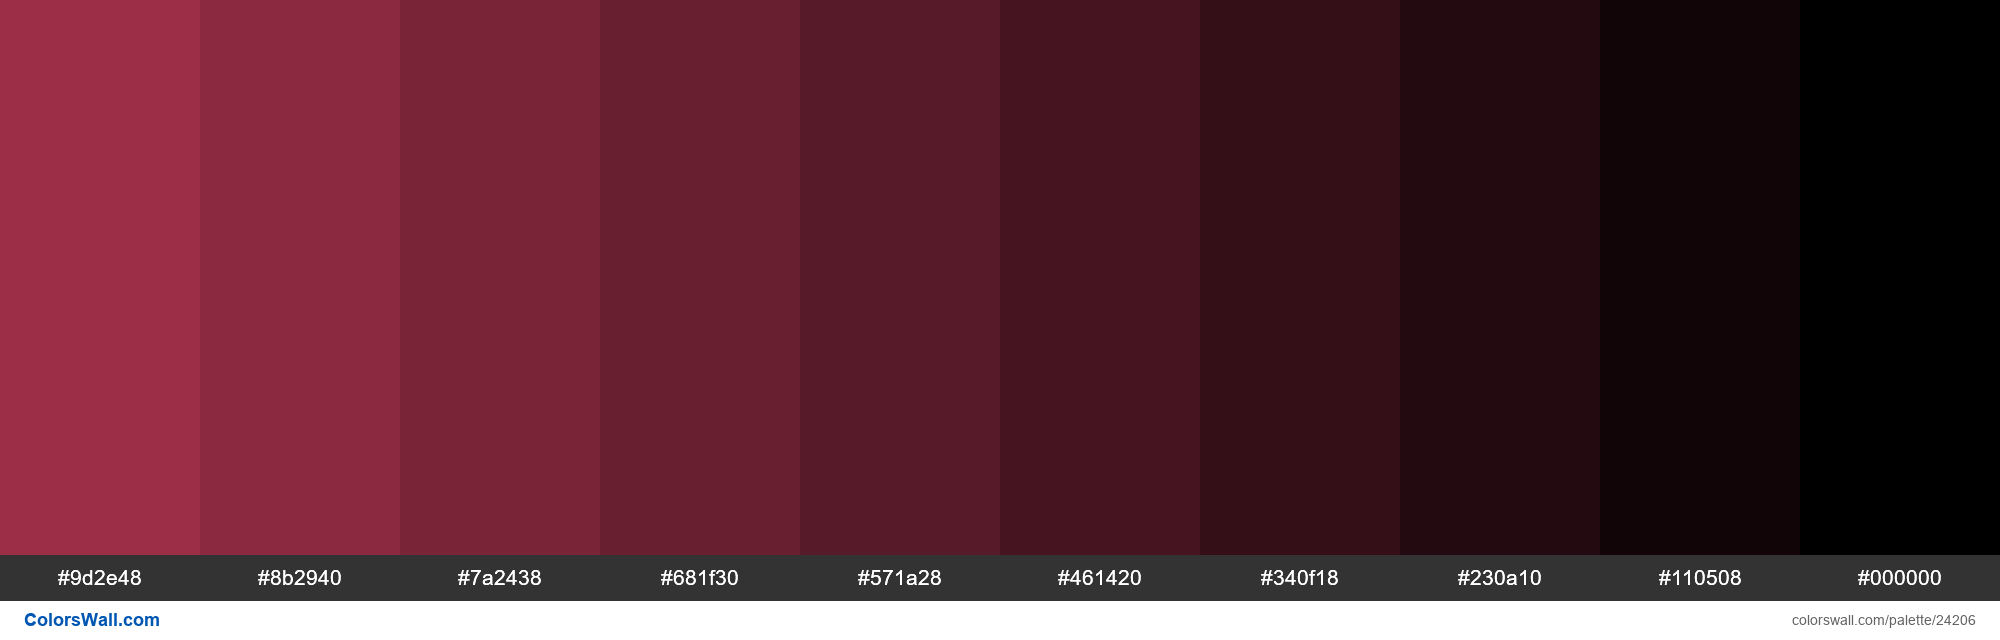 Shades of #ae3350 hex color - #24206